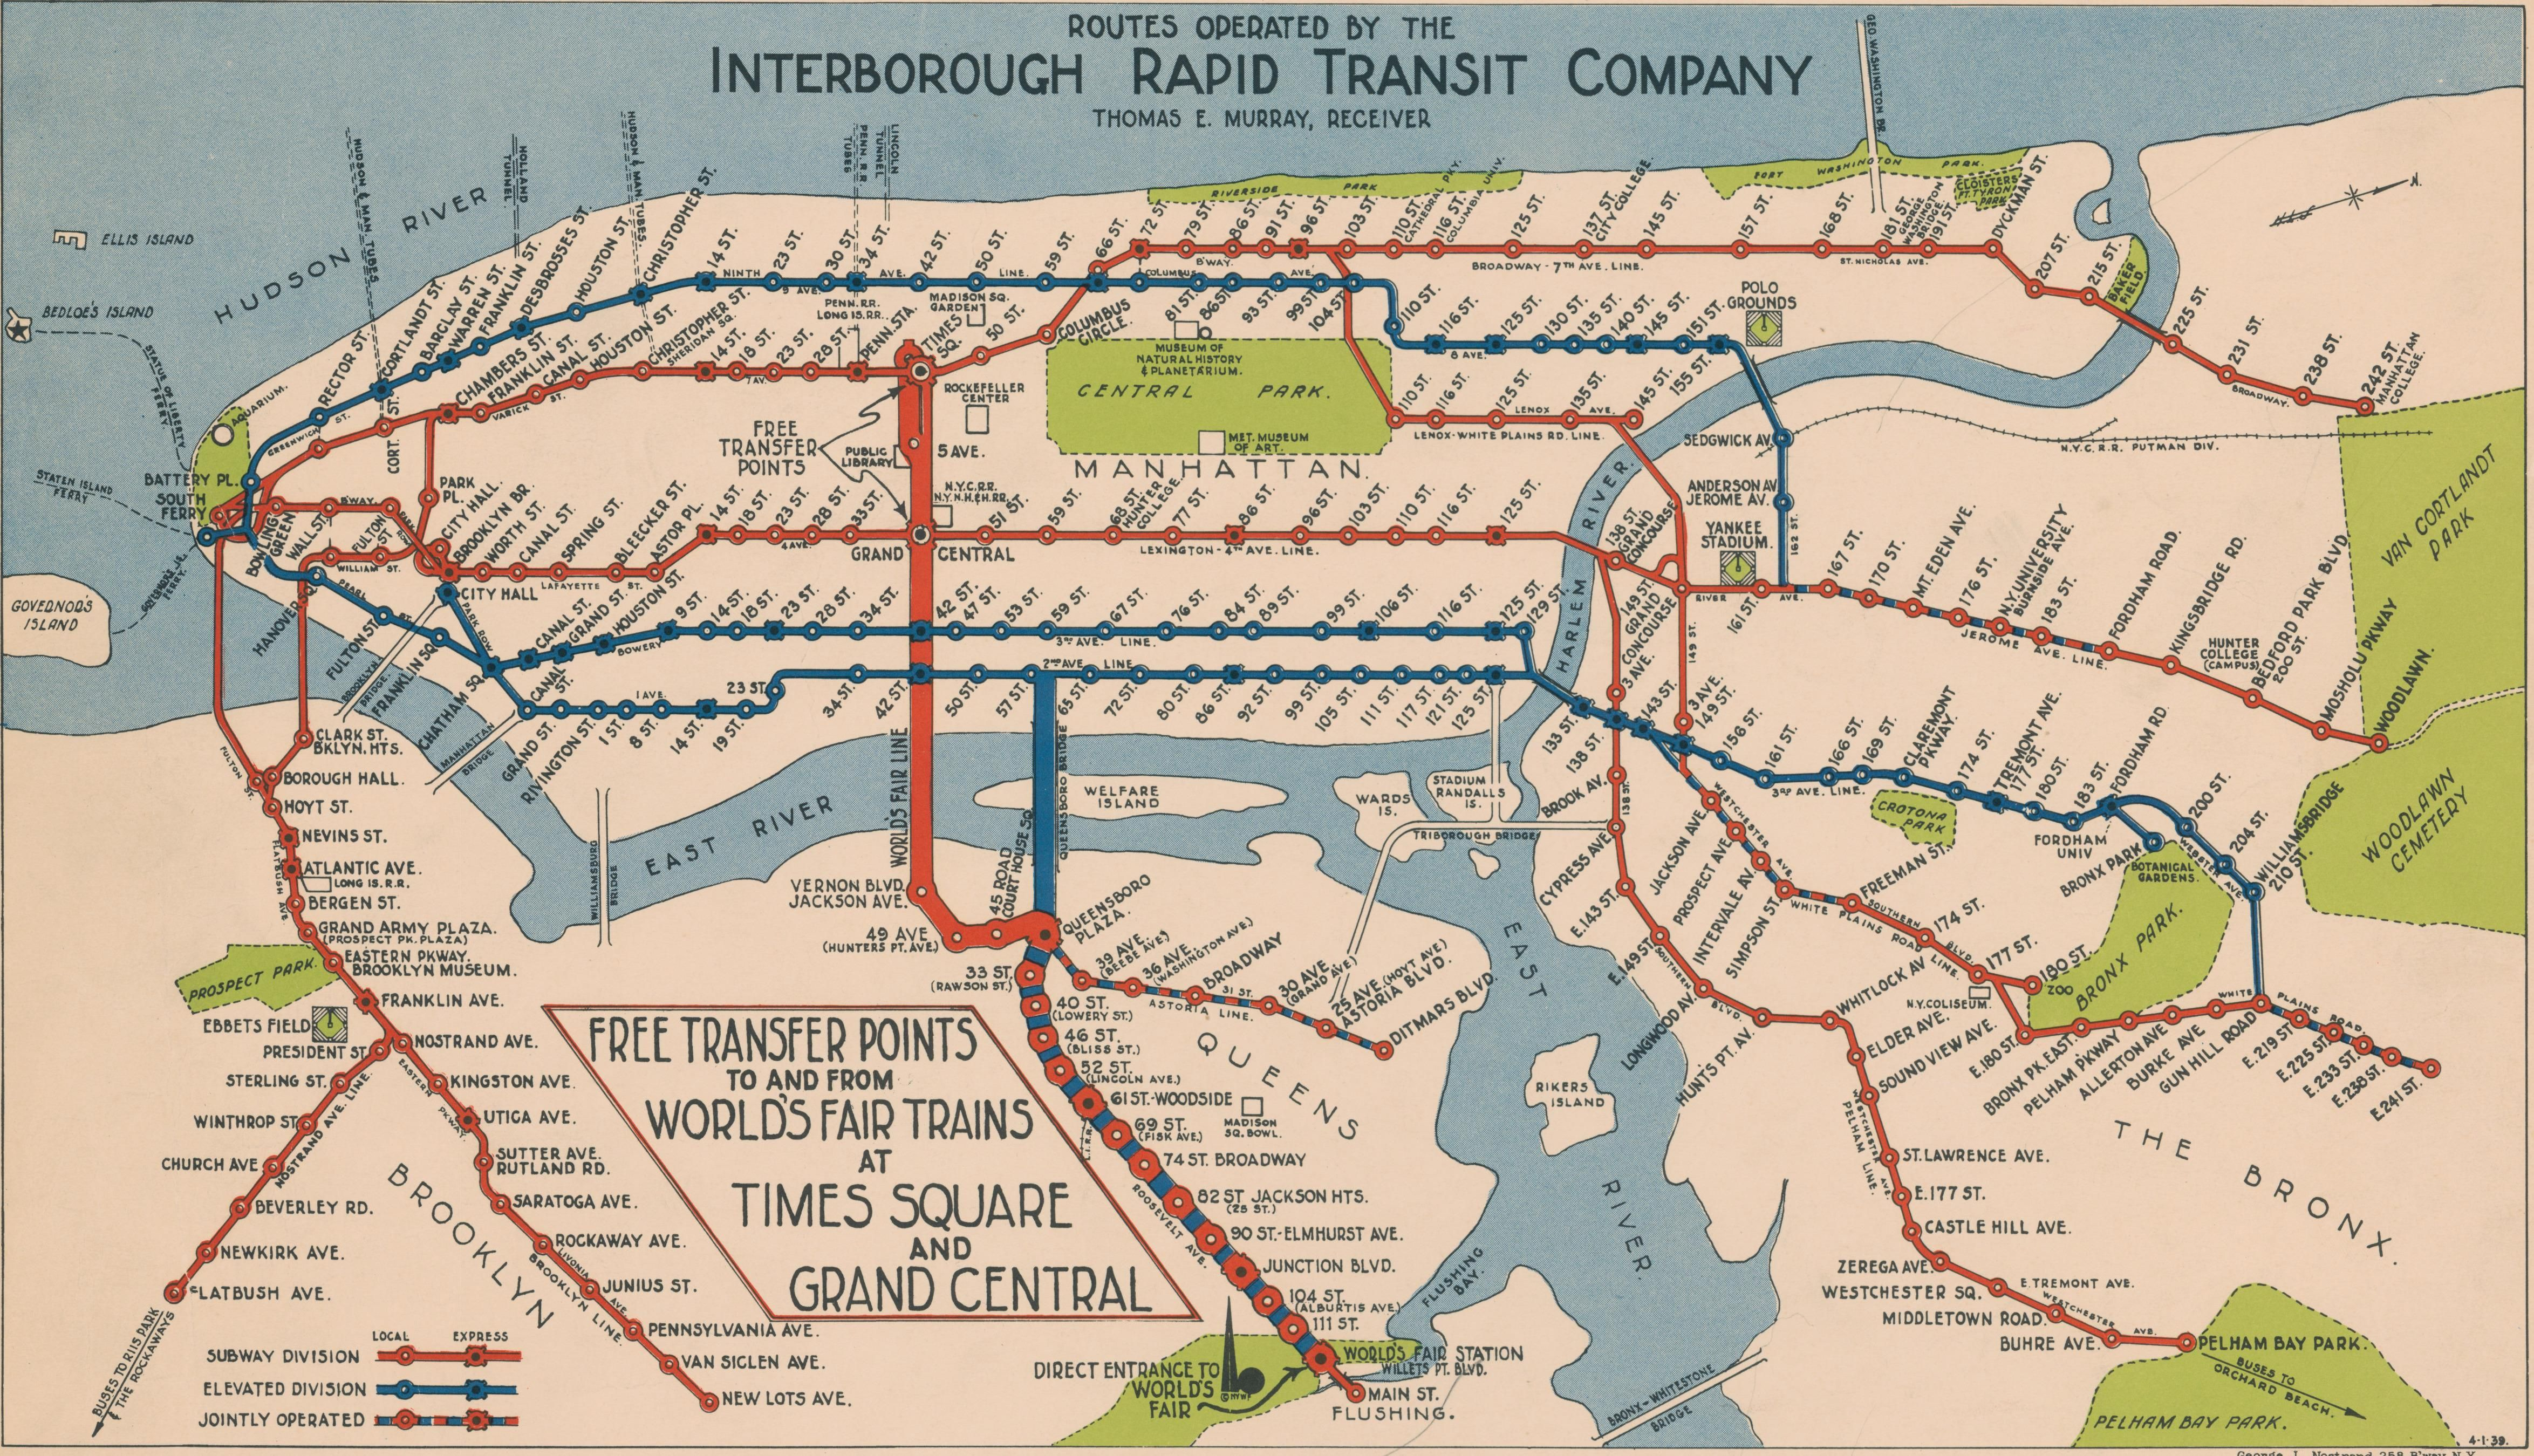 1940 Nyc Subway Map.Navigating New York 1939 Nyc Subway Map Issued By The Interborough